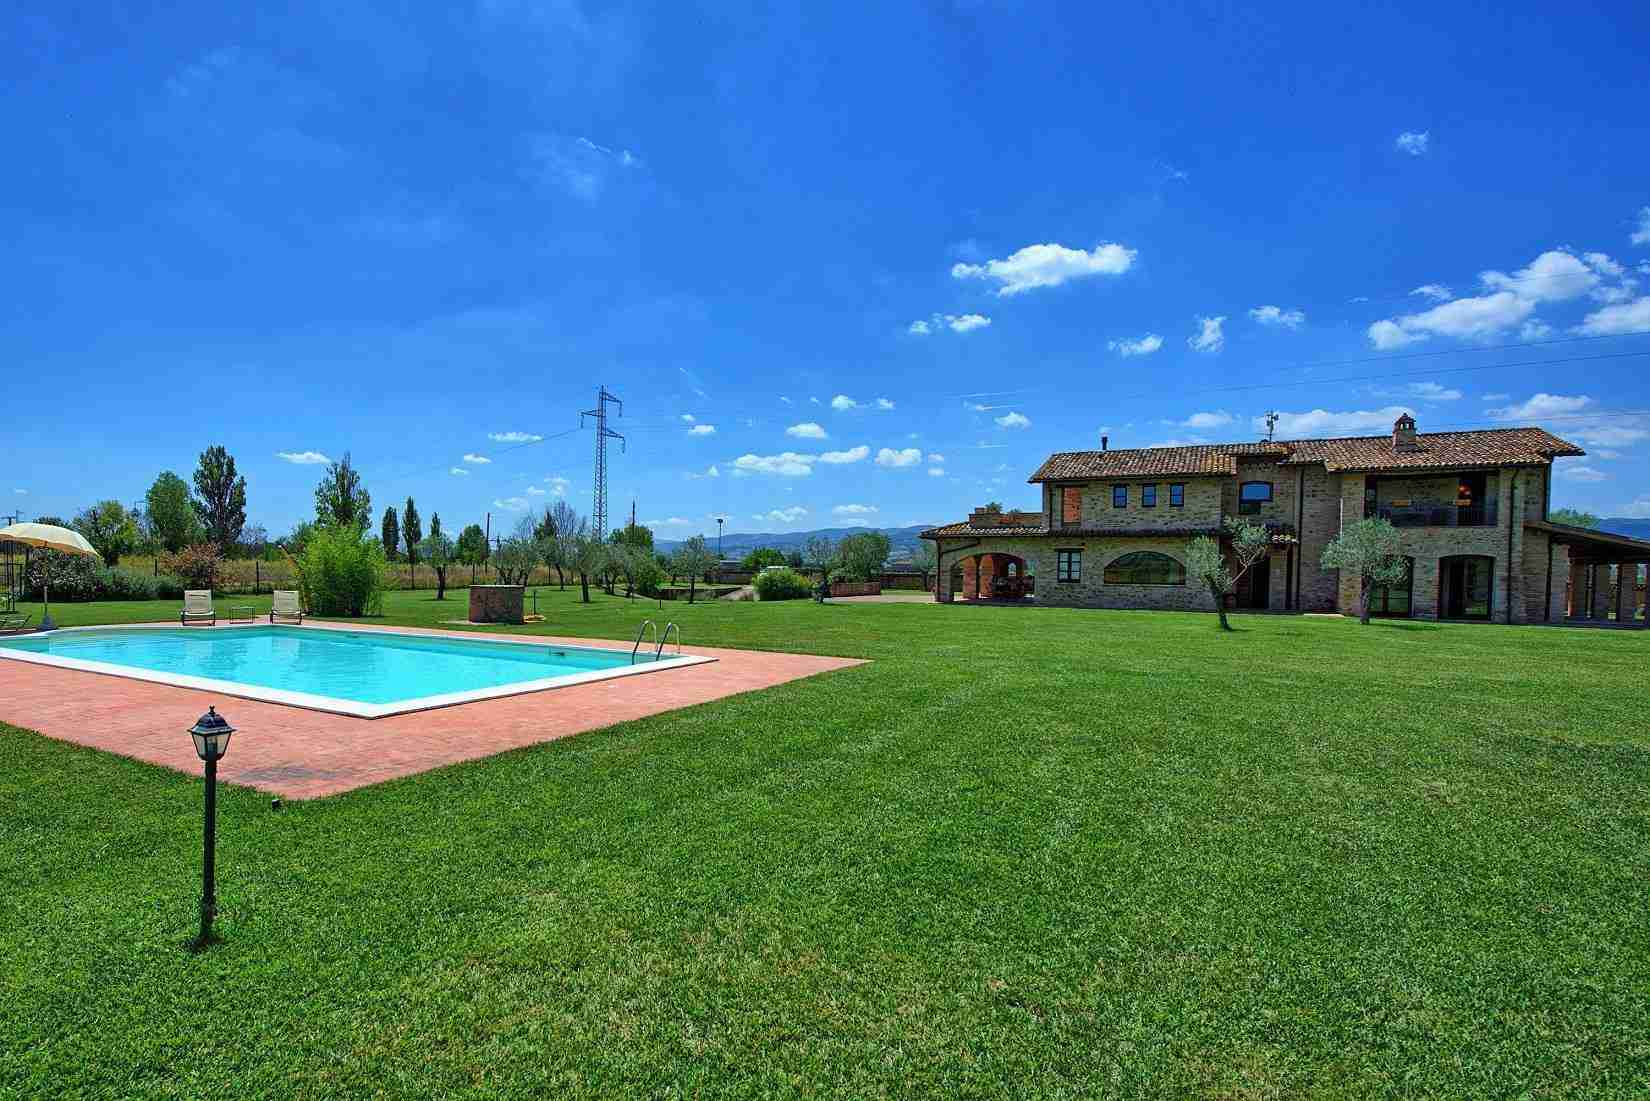 11 Assisi garden with pool